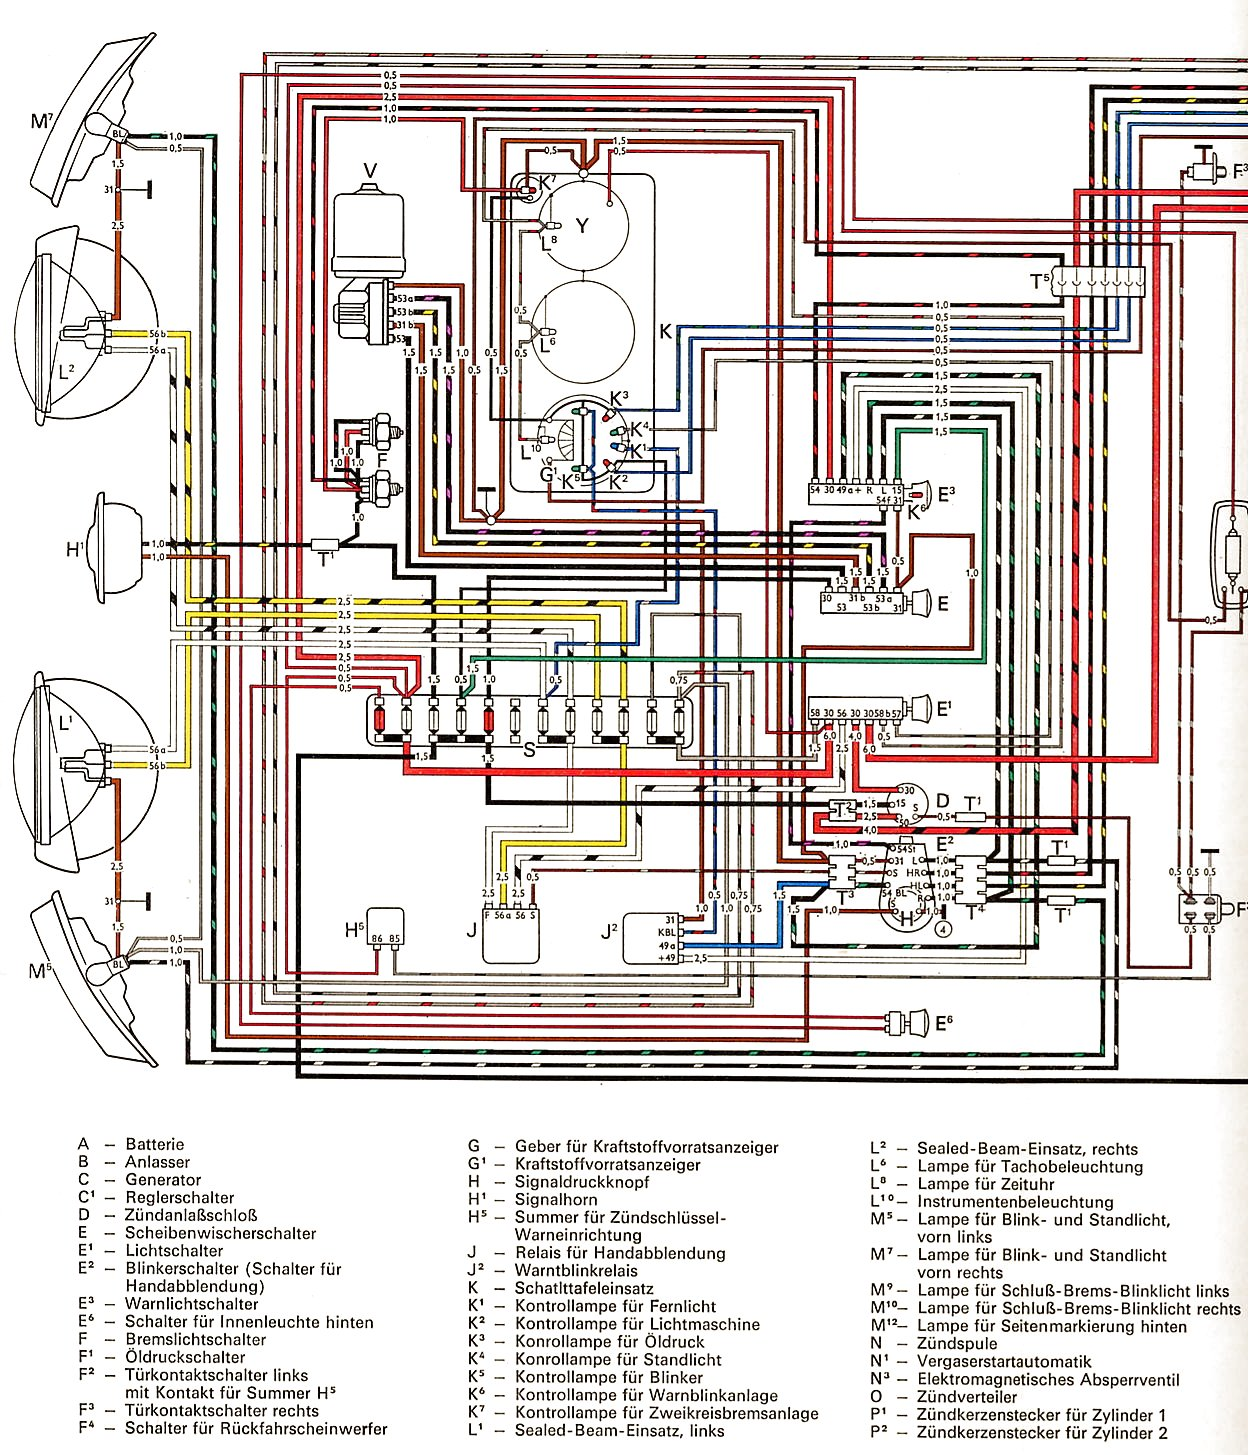 69 Vw Bug Wiring Basic Diagram 2001 Yamaha Ox66 Schematic Schematics Diagrams U2022 Rh Seniorlivinguniversity Co 67